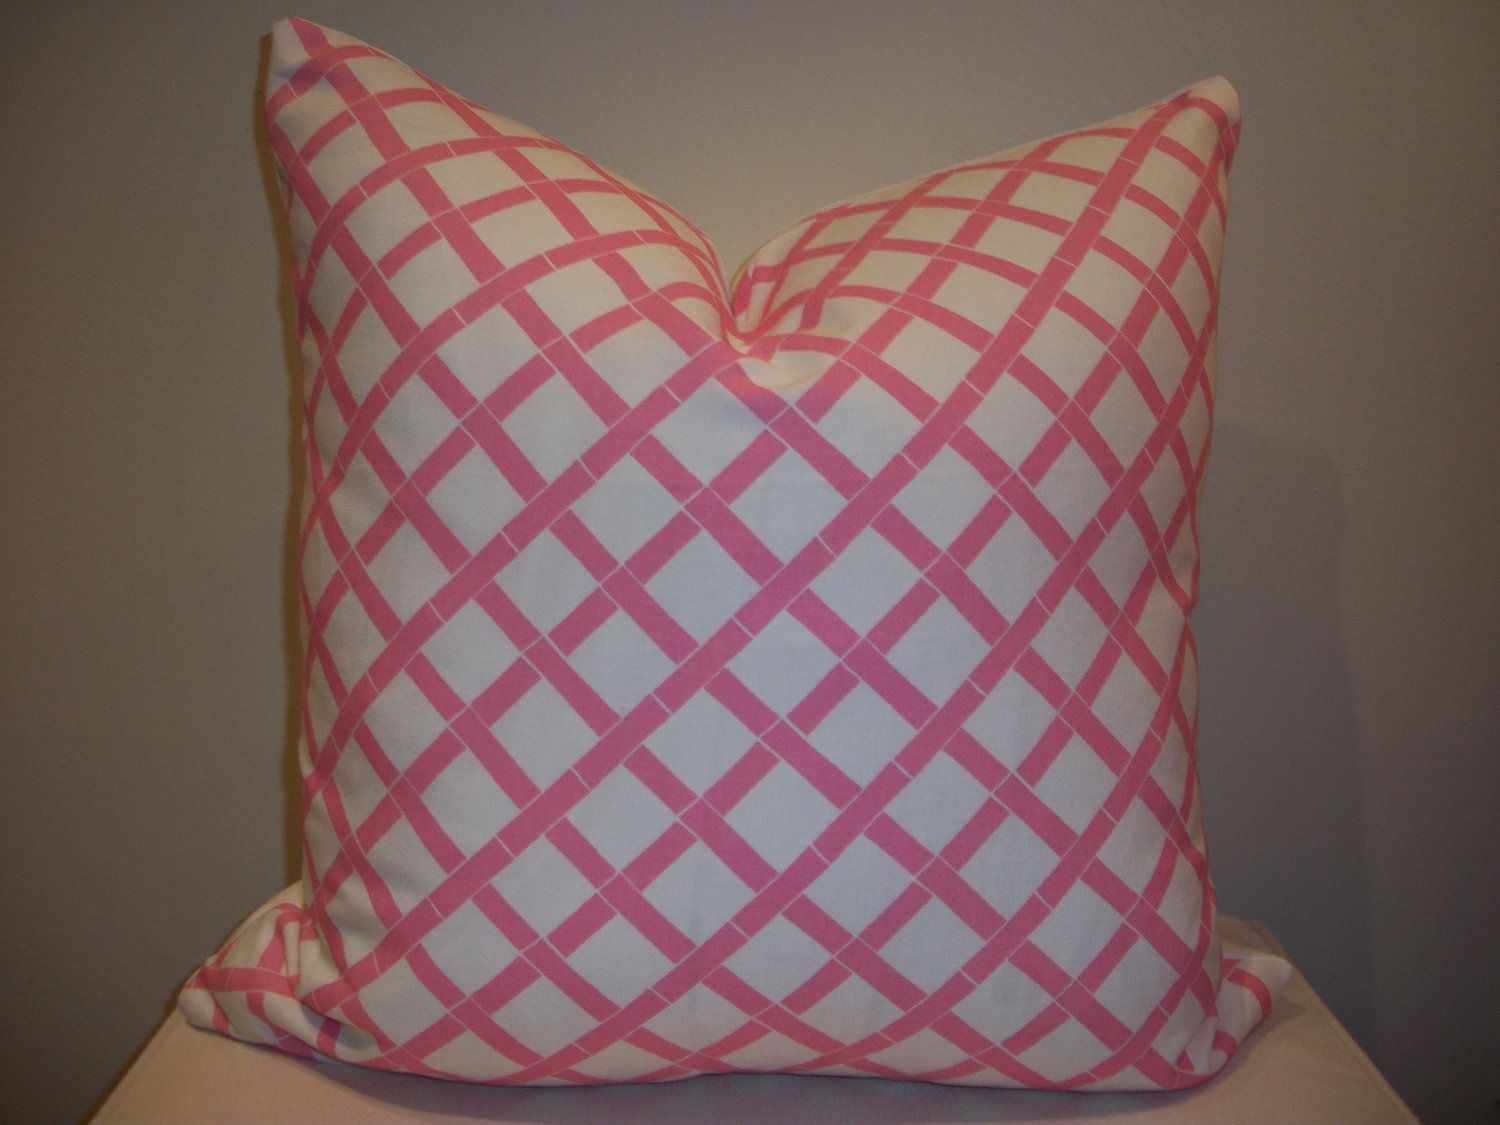 x pink and white lattice print design pillow cover